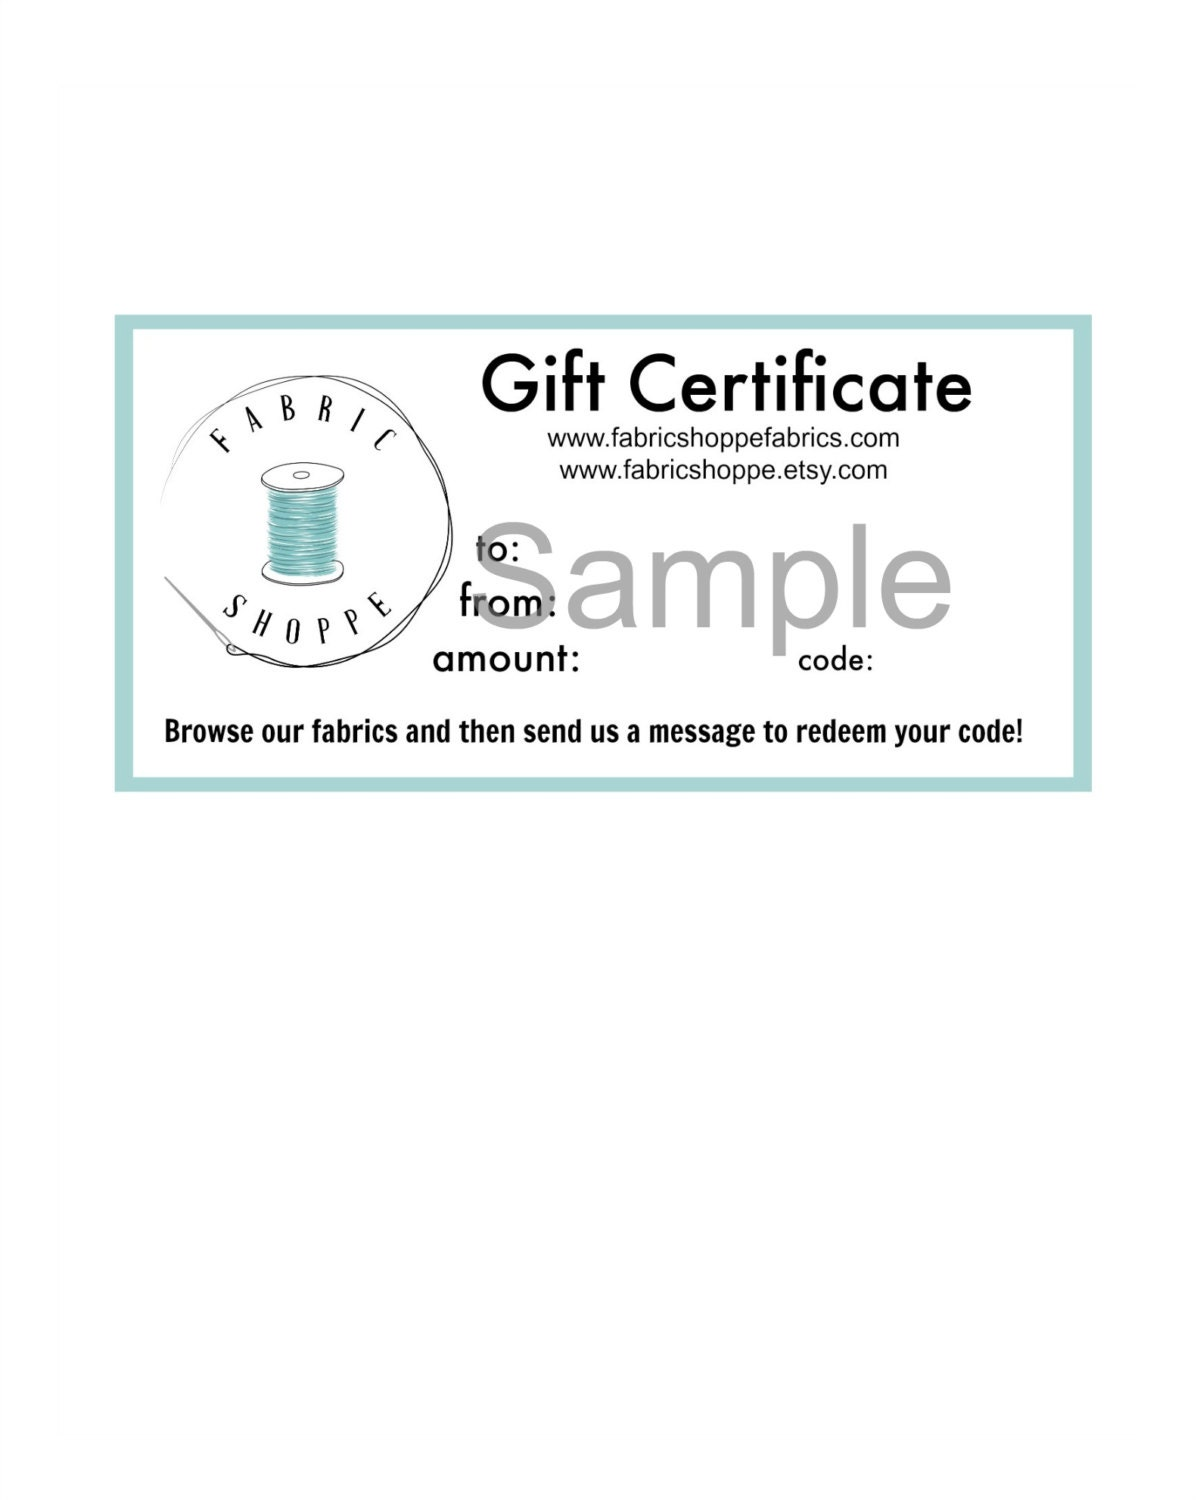 christmas gift gift for friend dollar gift certificate christmas gift gift for friend 50 dollar gift certificate printable gift card for the fabric shoppe instant and print